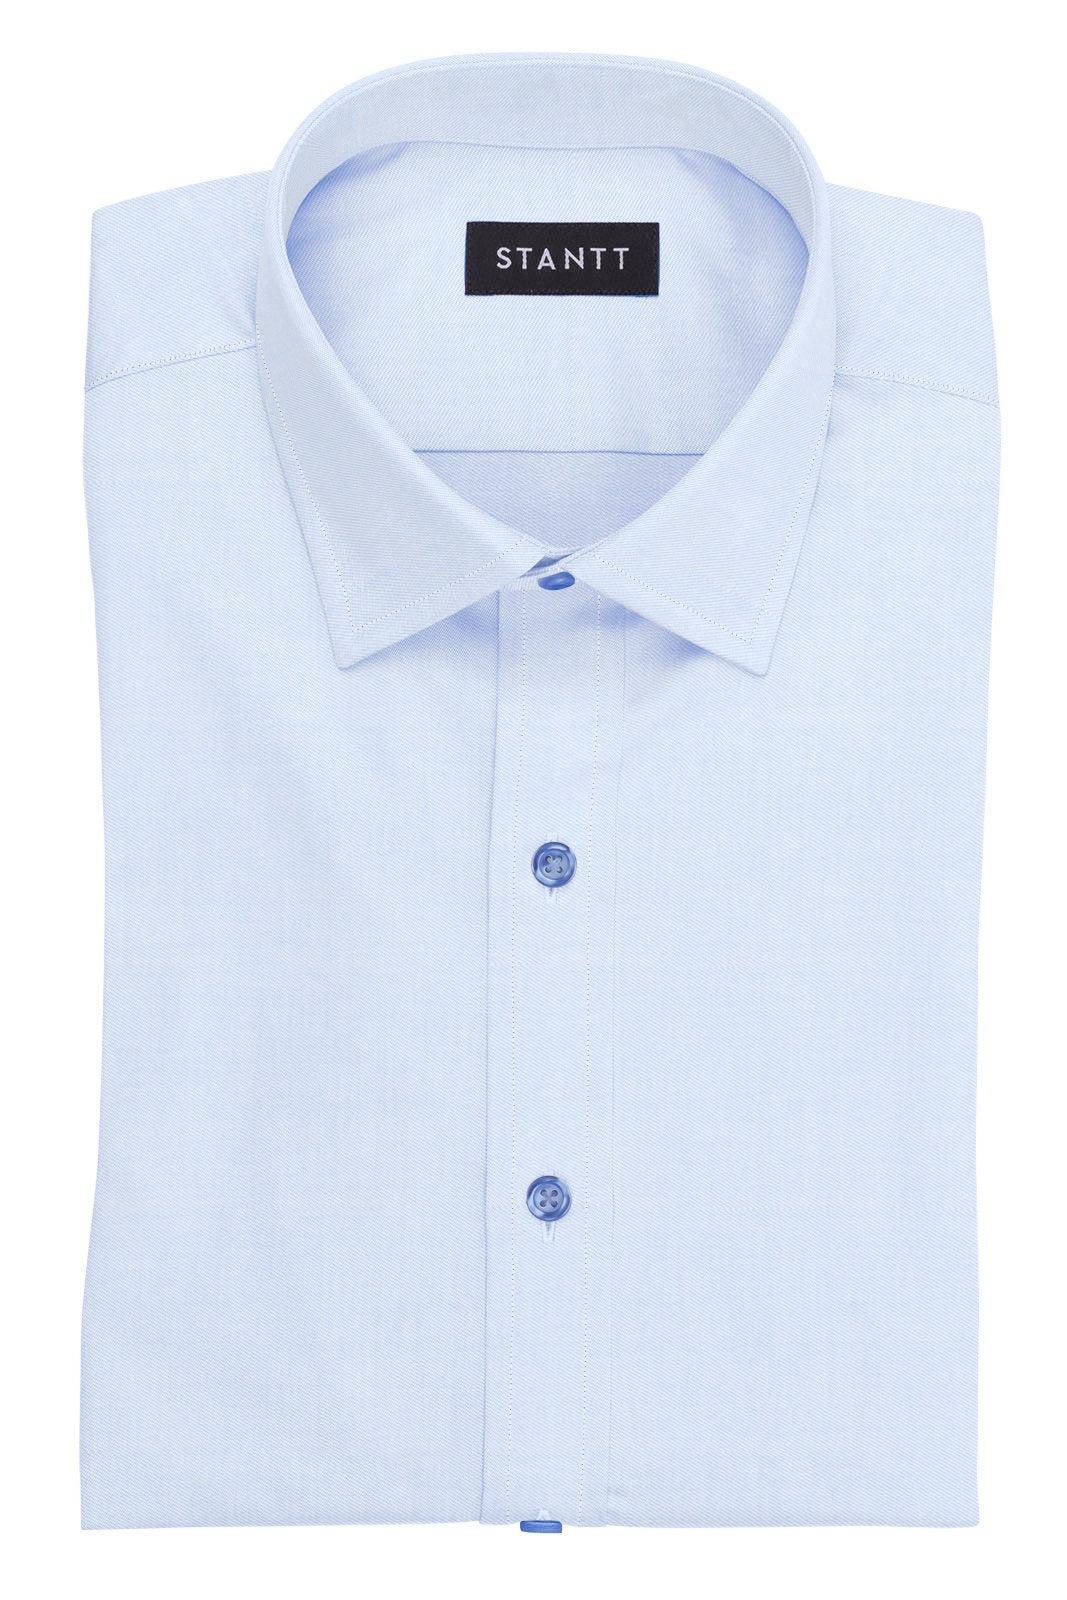 Navy Button on Wrinkle-Resistant Light Blue Twill: Modified-Spread Collar, Barrel Cuff